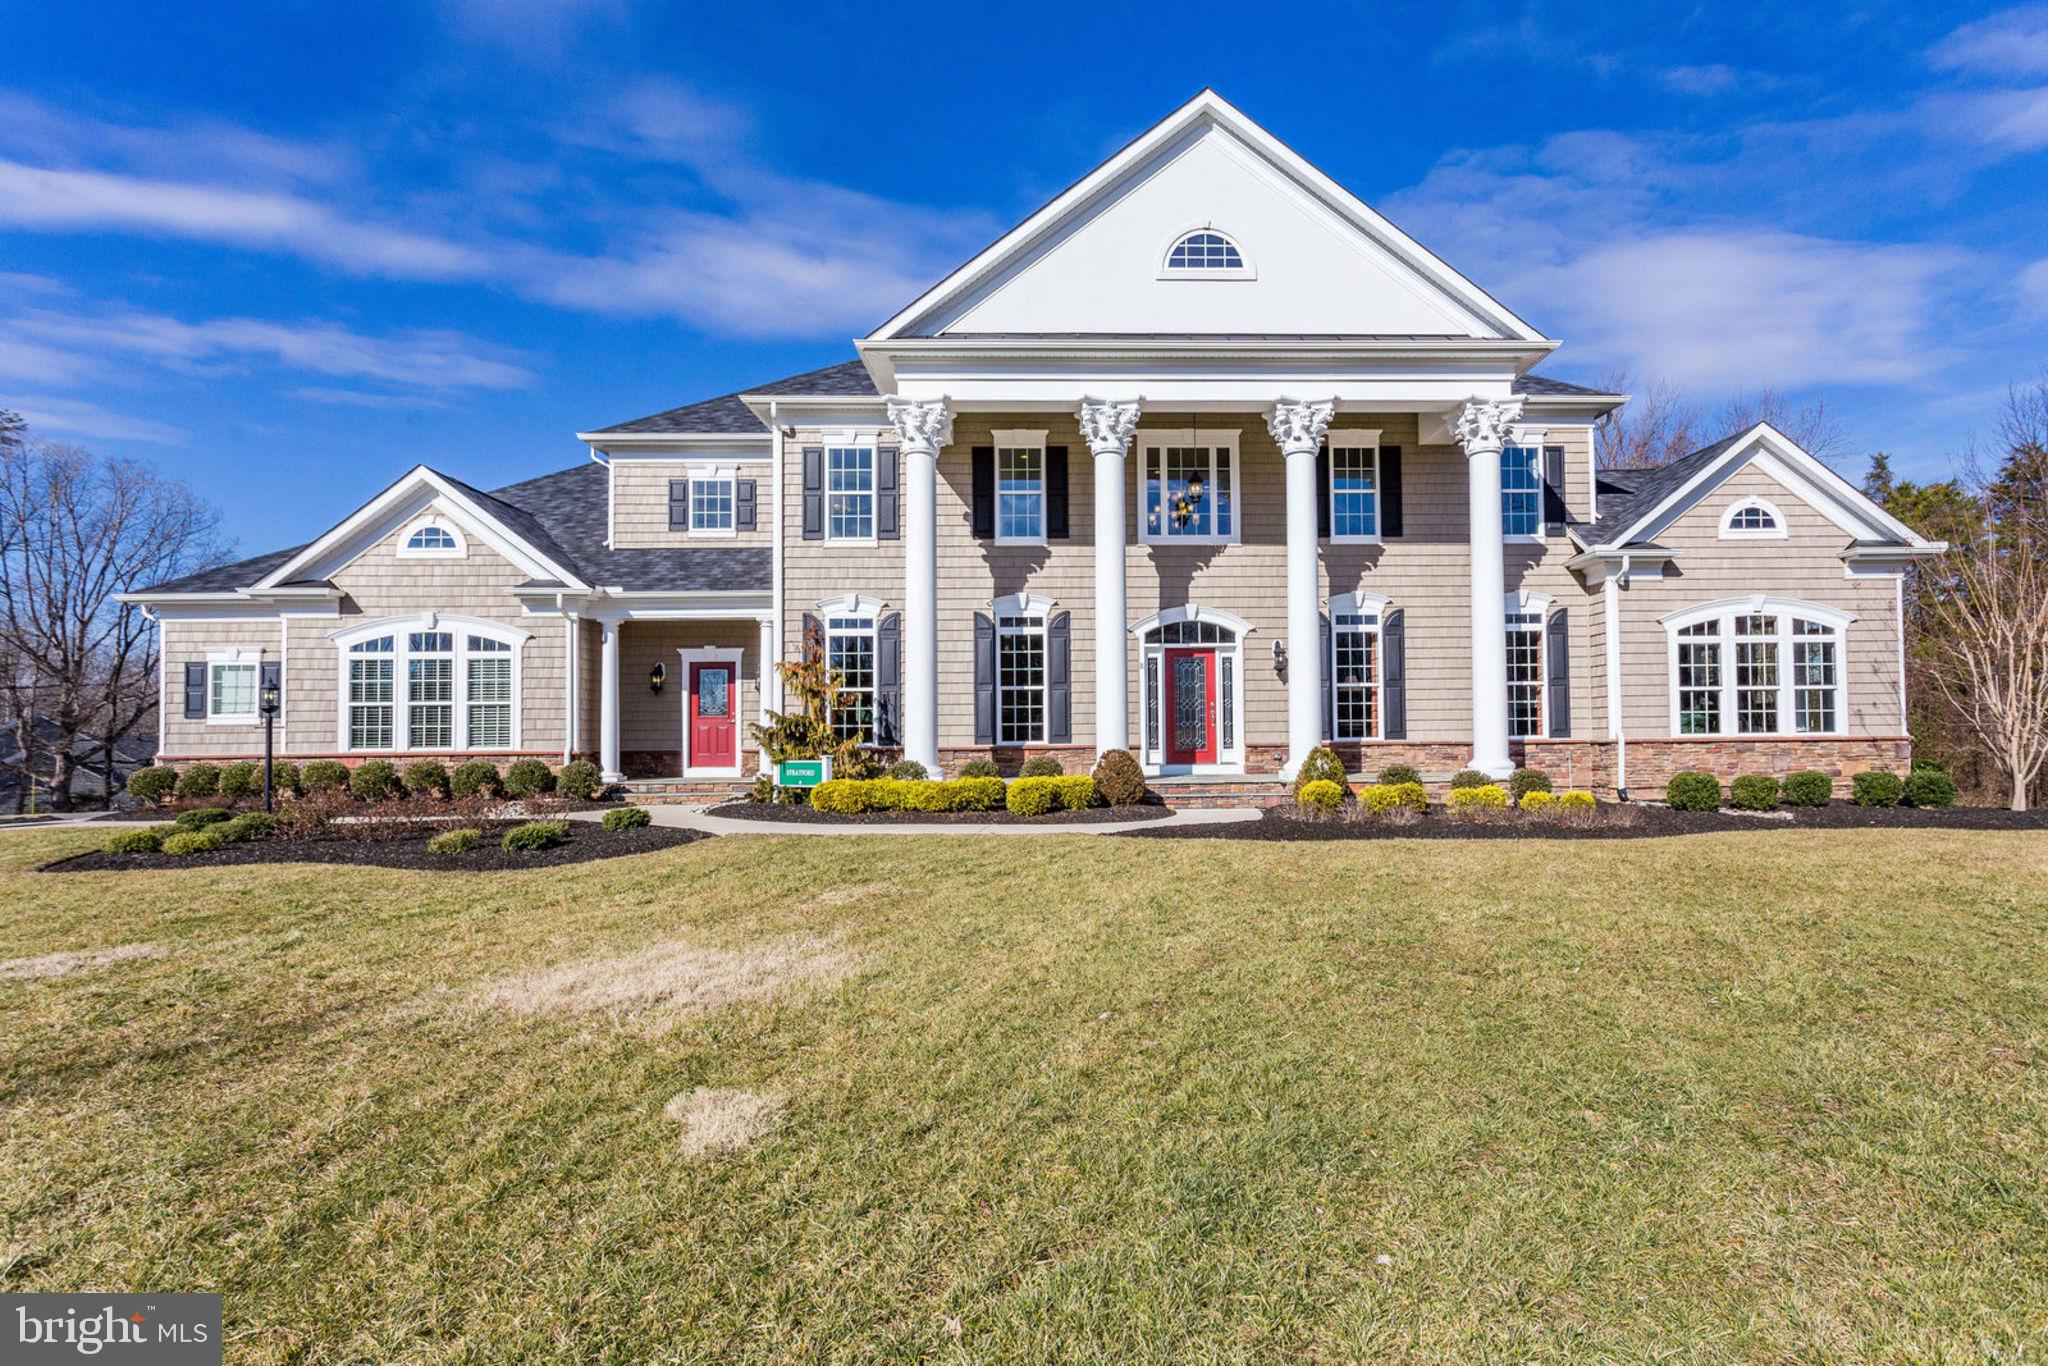 Award winning model is located in AUGUSTINE at The Glens. This home is AMAZINGLY built from top to b